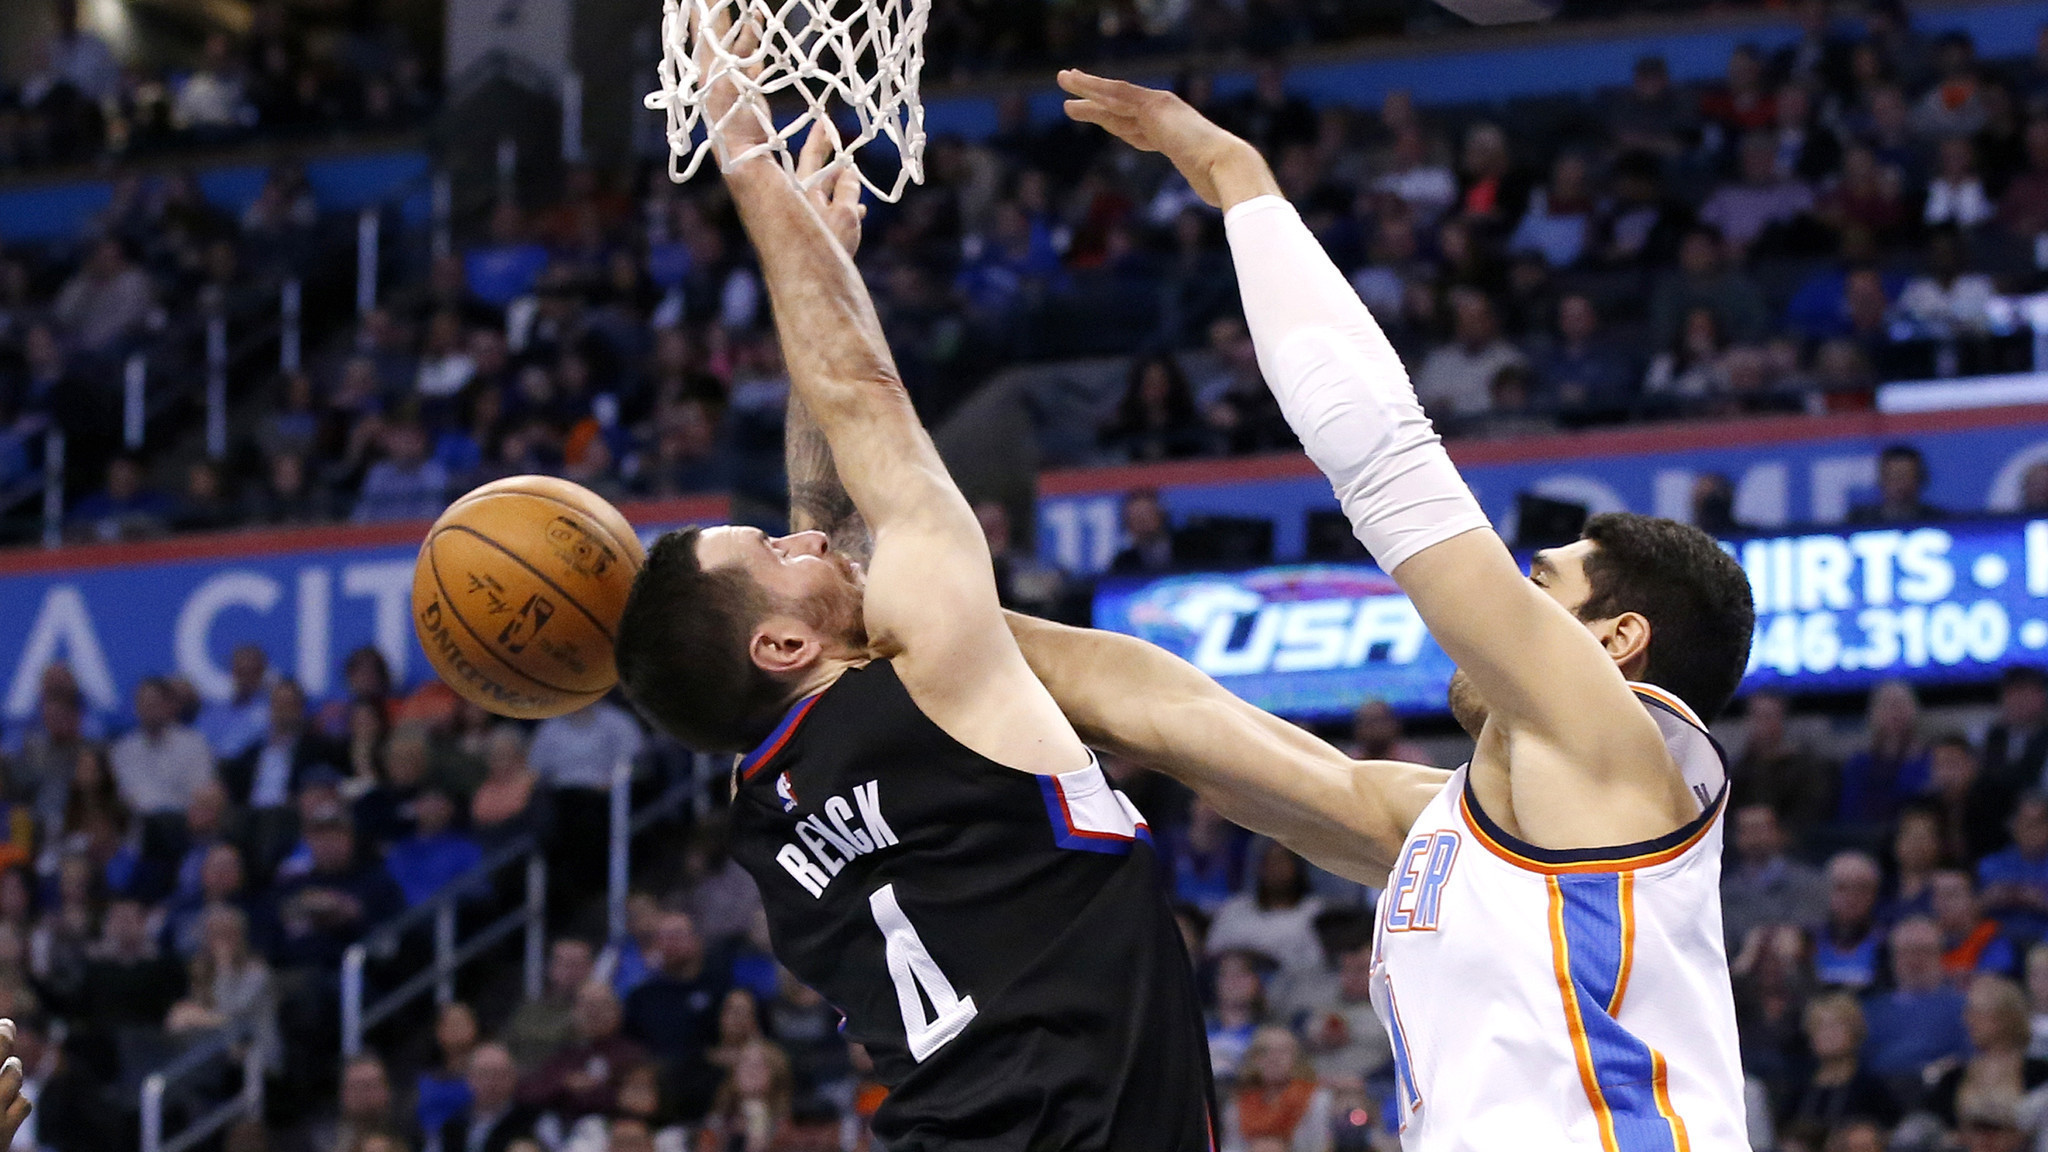 La-sp-clippers-thunder-20161231